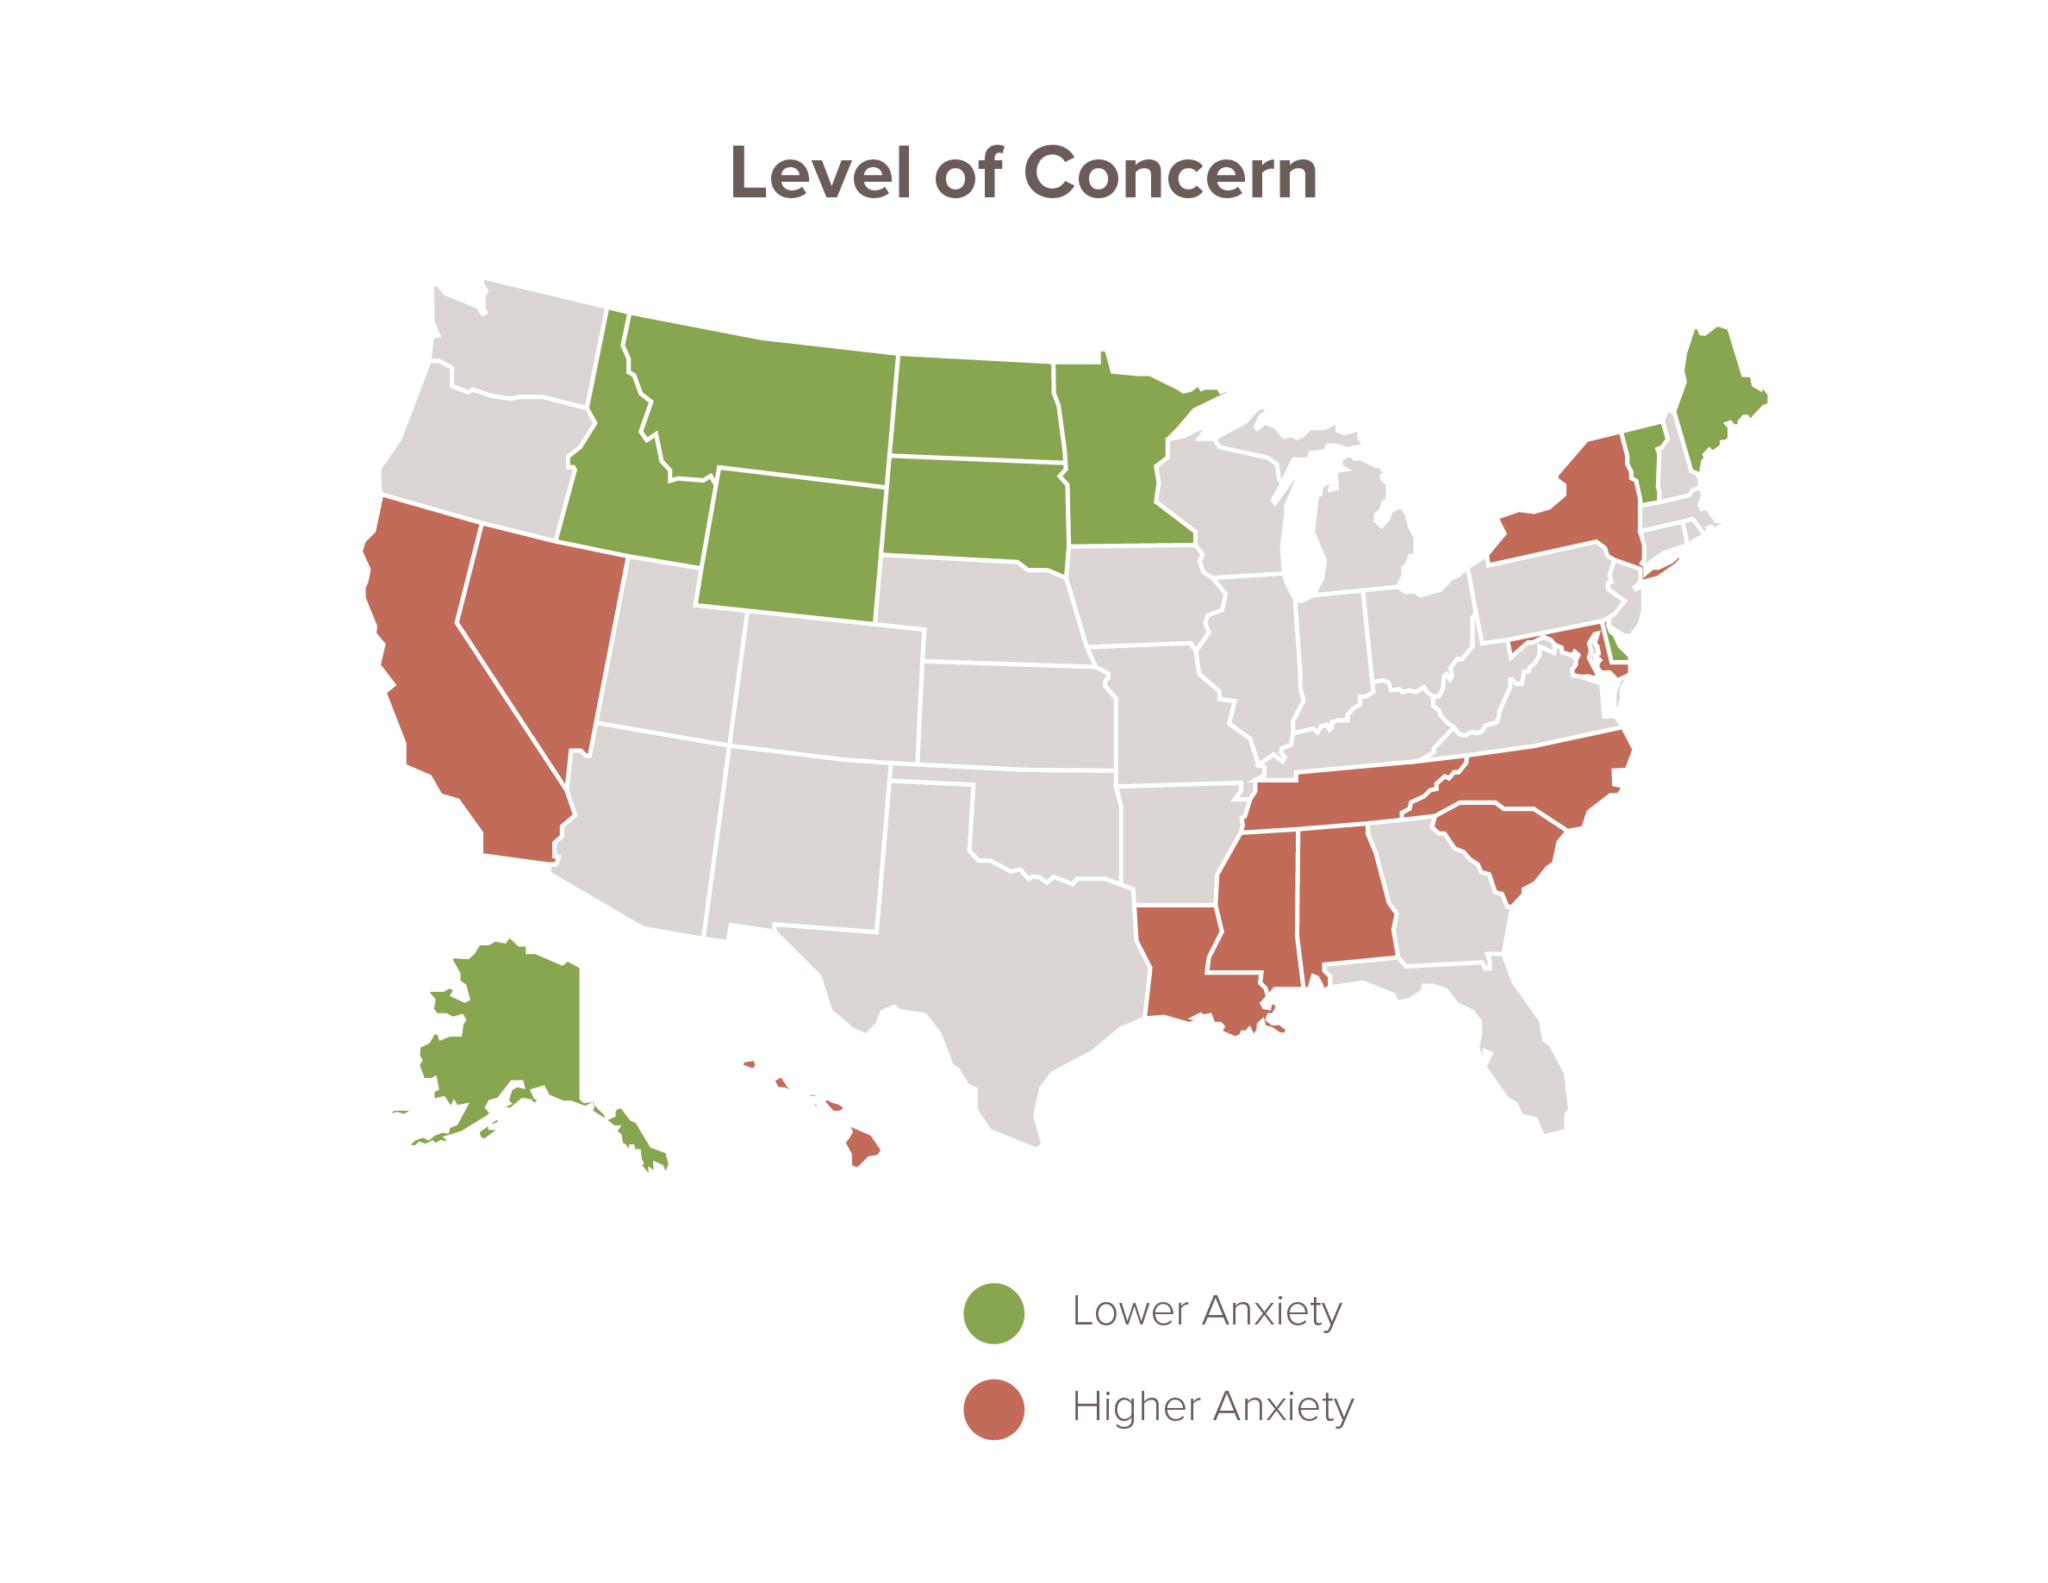 Level of concern across the US map showing highest and lowest concerned states